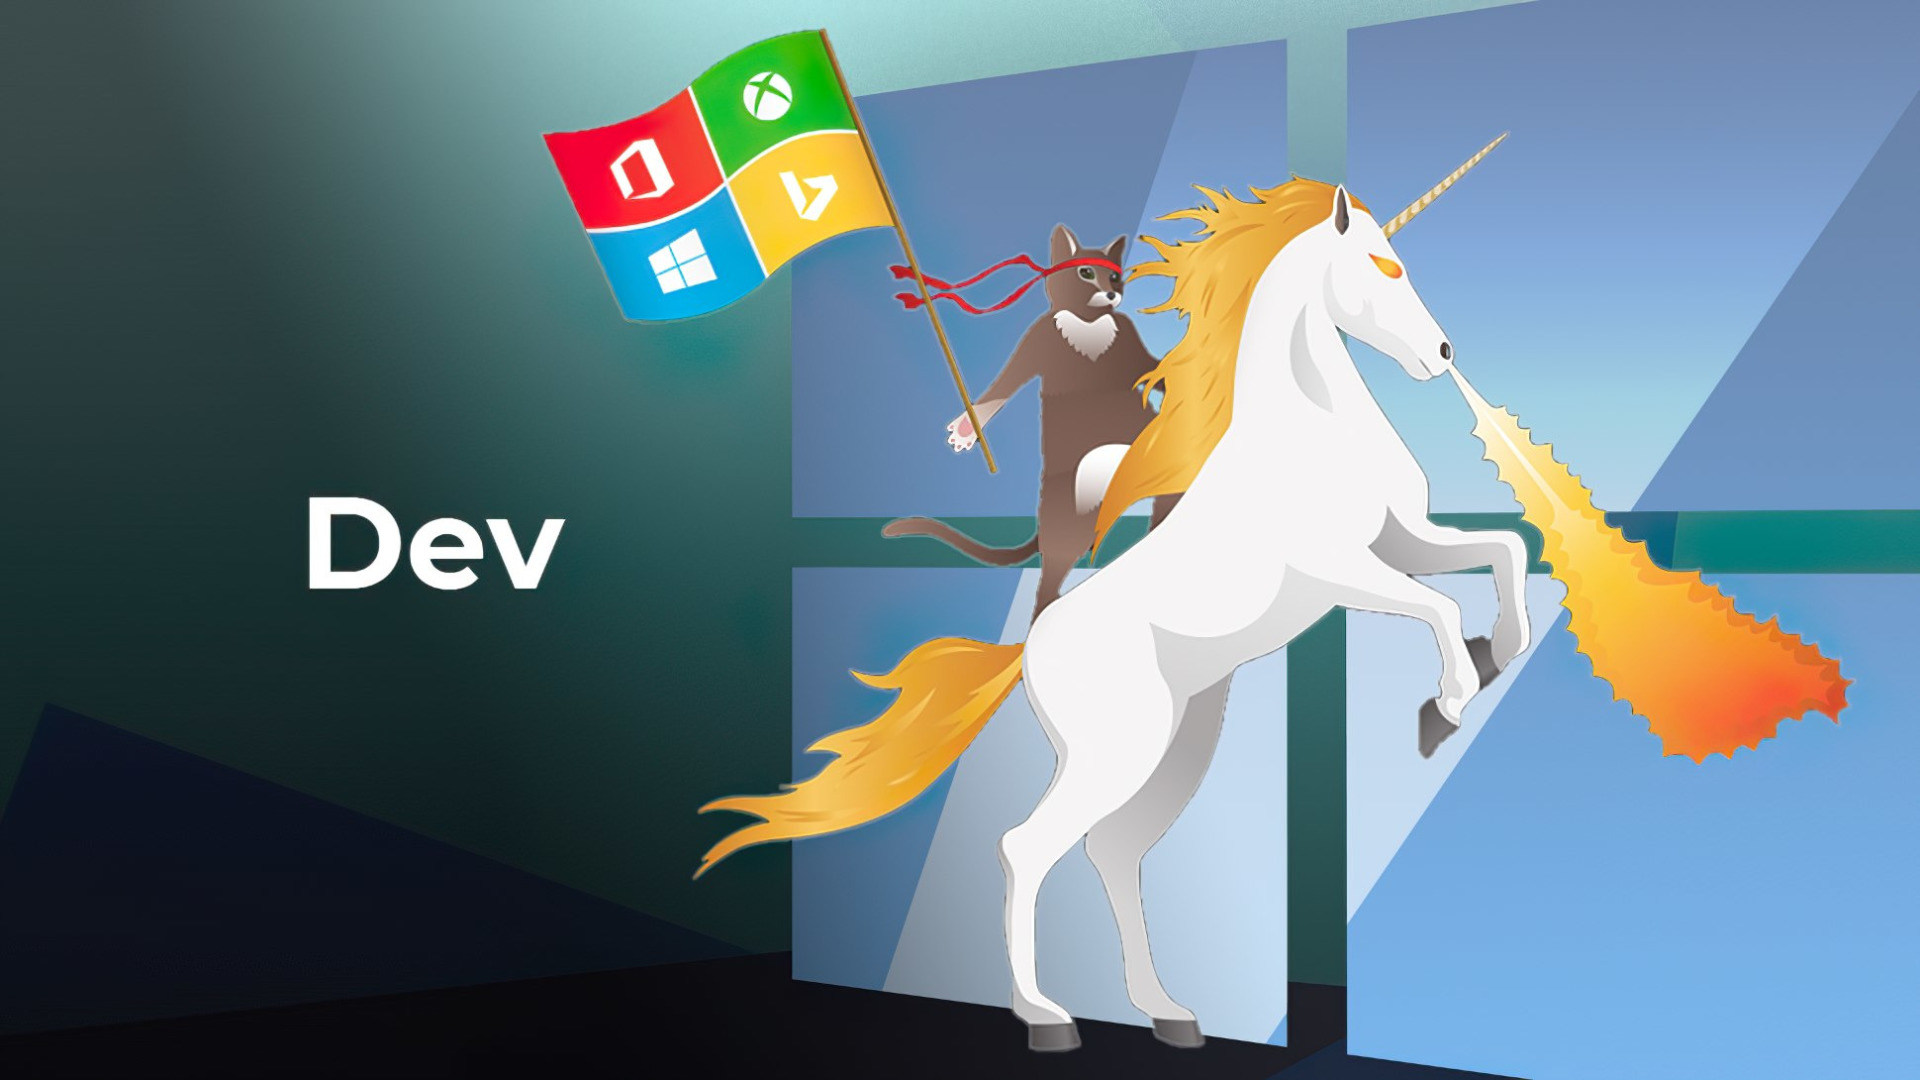 Microsoft, Windows 10, Beta, Windows Insider, Insider Preview, Windows 10 Insider Preview, Insider, Windows 10 Preview, Windows Insider Program, Windows Insider Preview, Developer, Windows Logo, Developer Preview, Development, Dev, Insider Program, katze, Windows 10 Logo, dev channel, Insider Channel, Windows Insider Channel, CAT, Windows Insider Dev Channel, Insider Dev Channel, Pferd, Horse